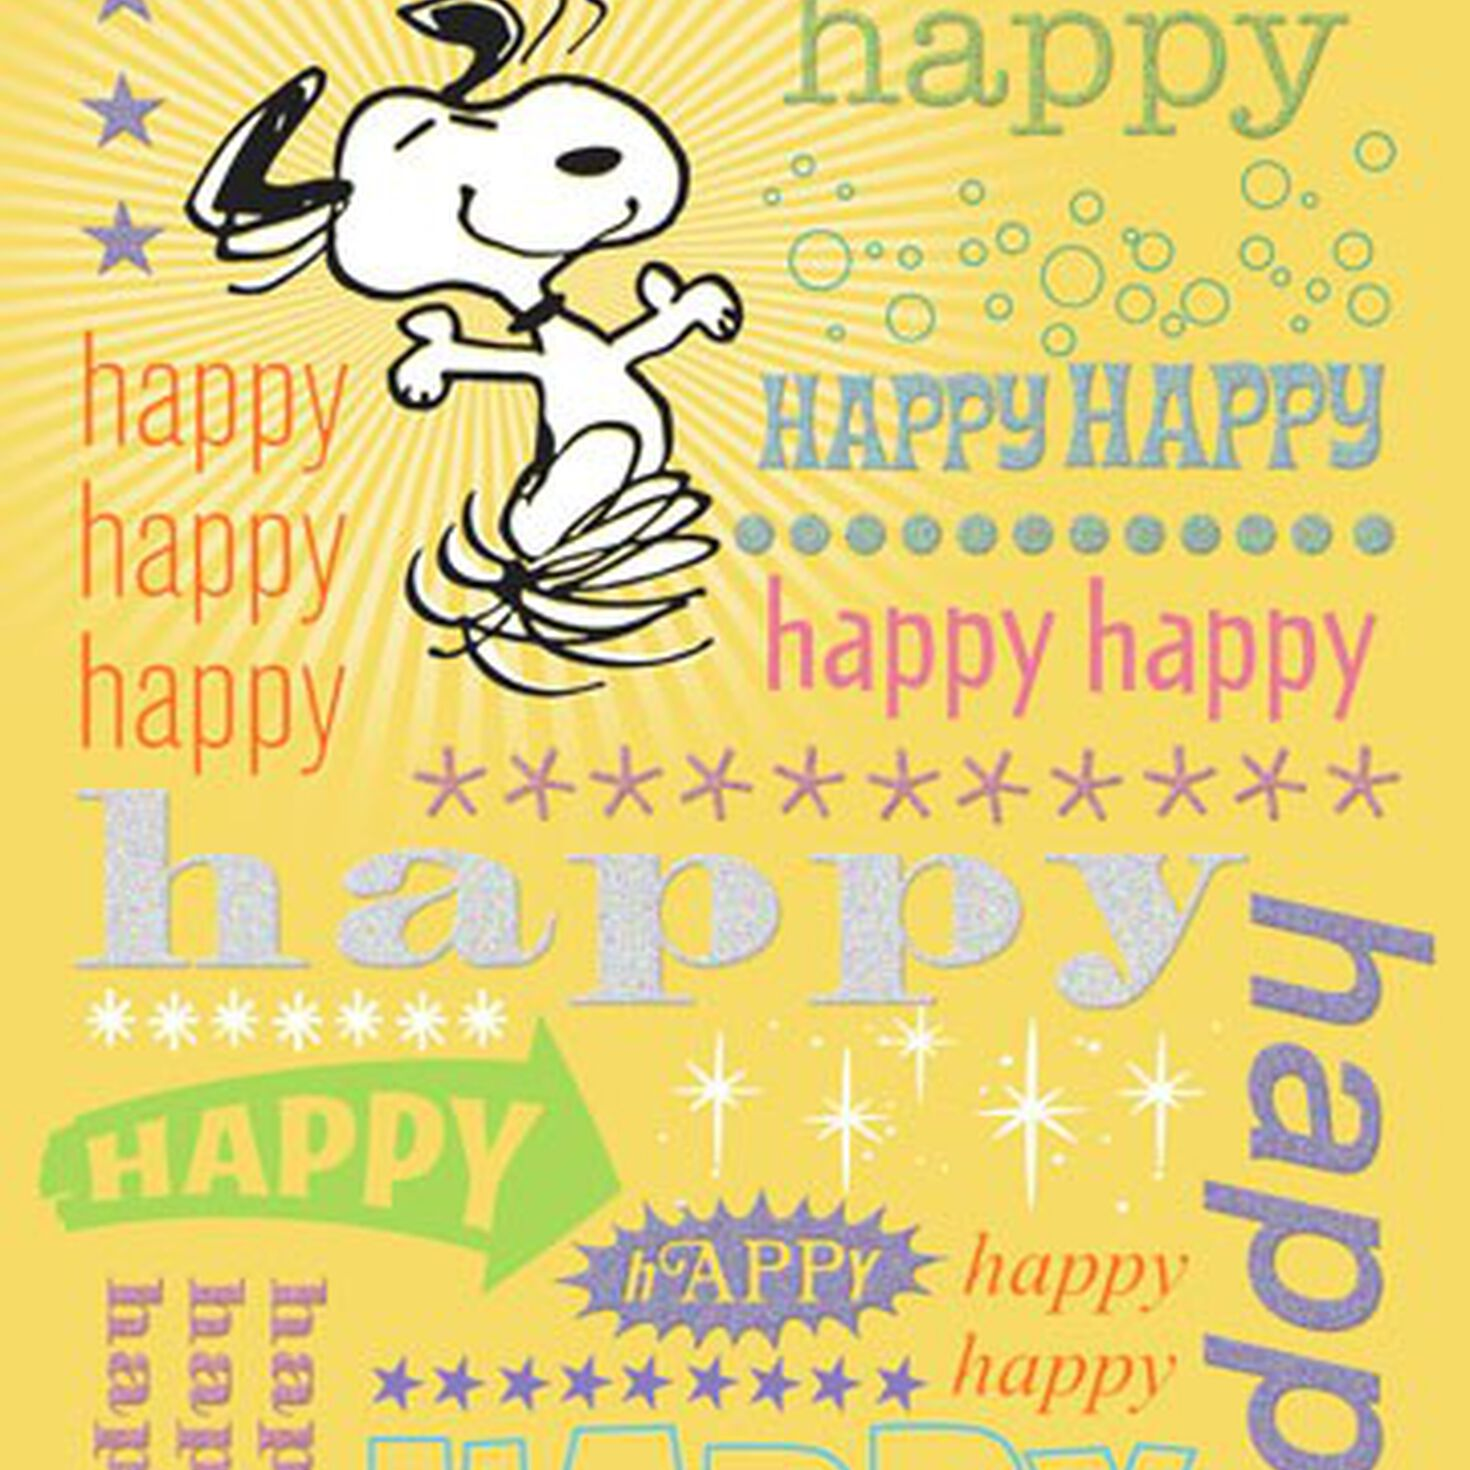 Watch more like Snoopy Birthday Card To Send – Hallmark Boxed Birthday Cards